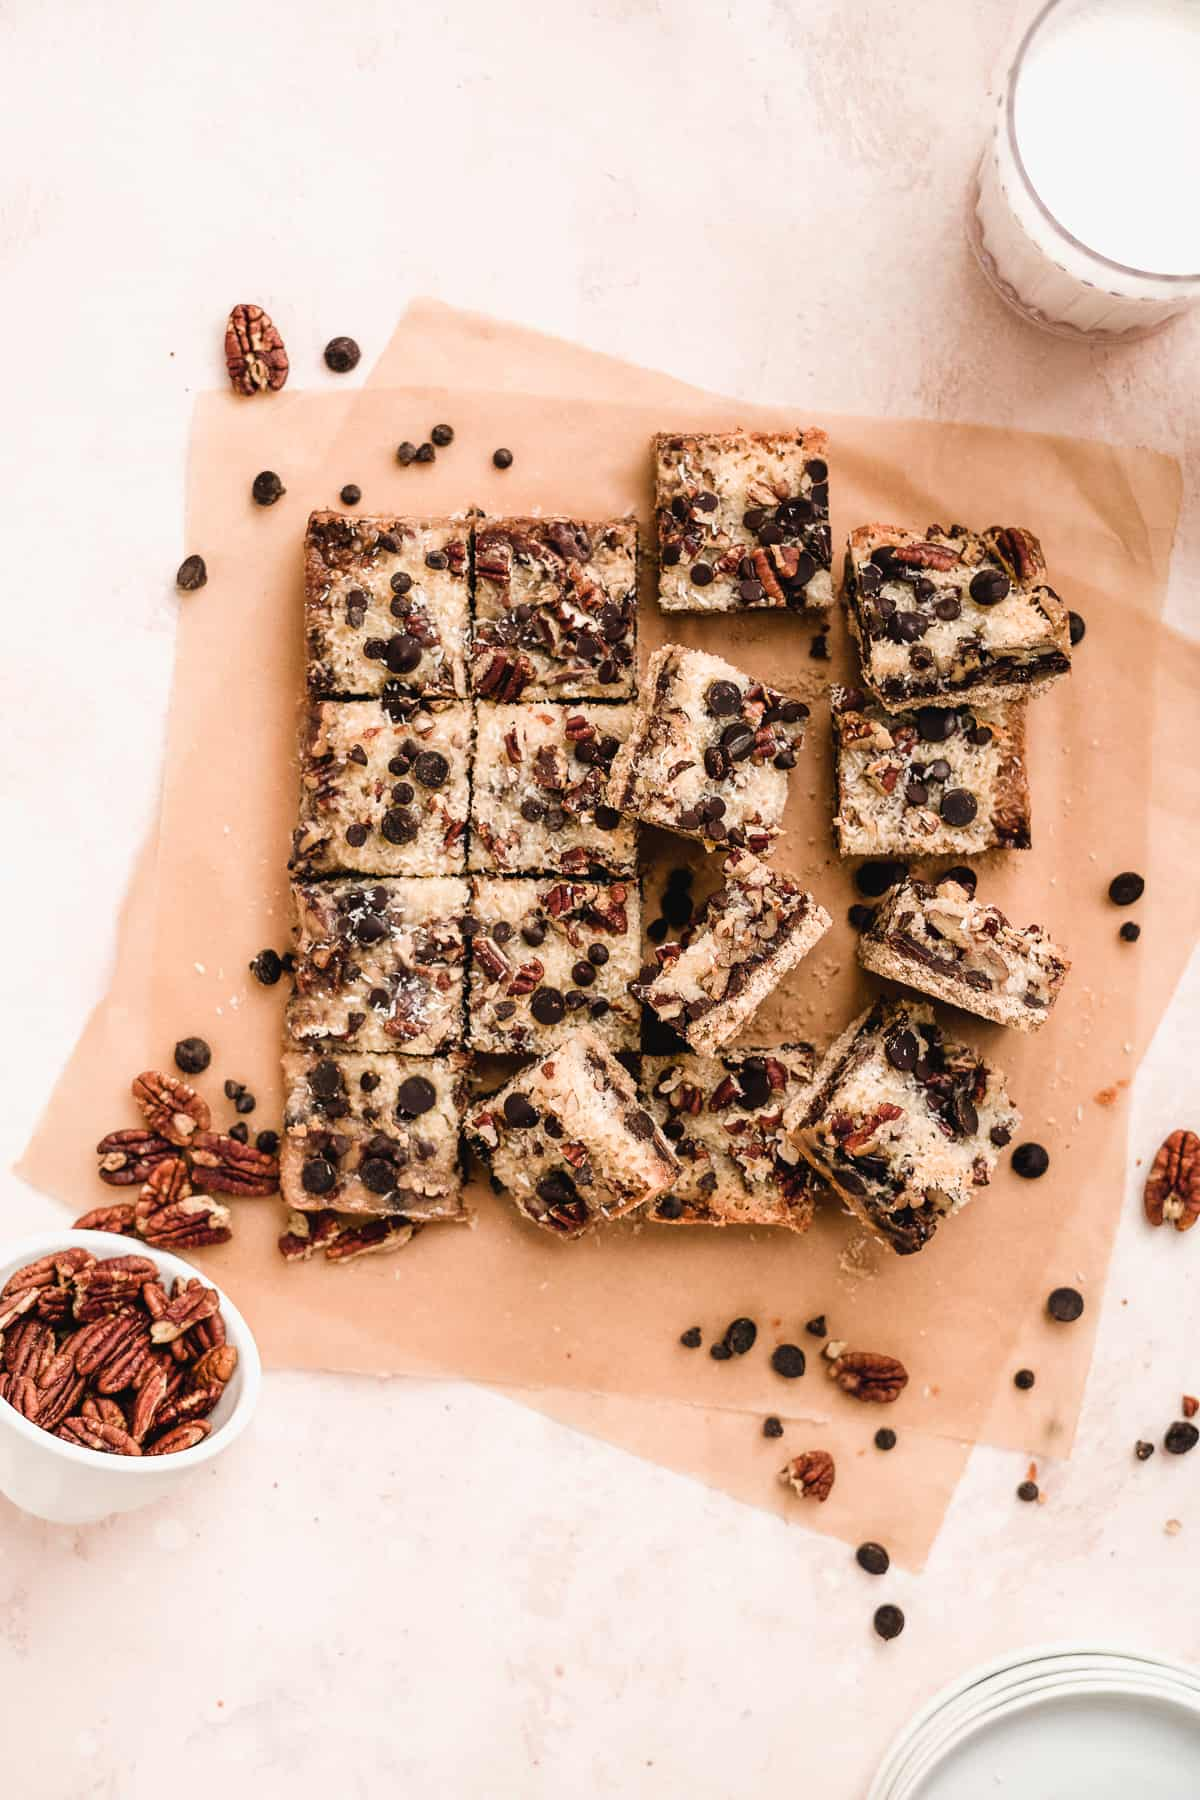 Overhead view of baked Toasted Oat Seven Layer Magic Cookie Bars cut into squares and separated to reveal the delicious side and top views.